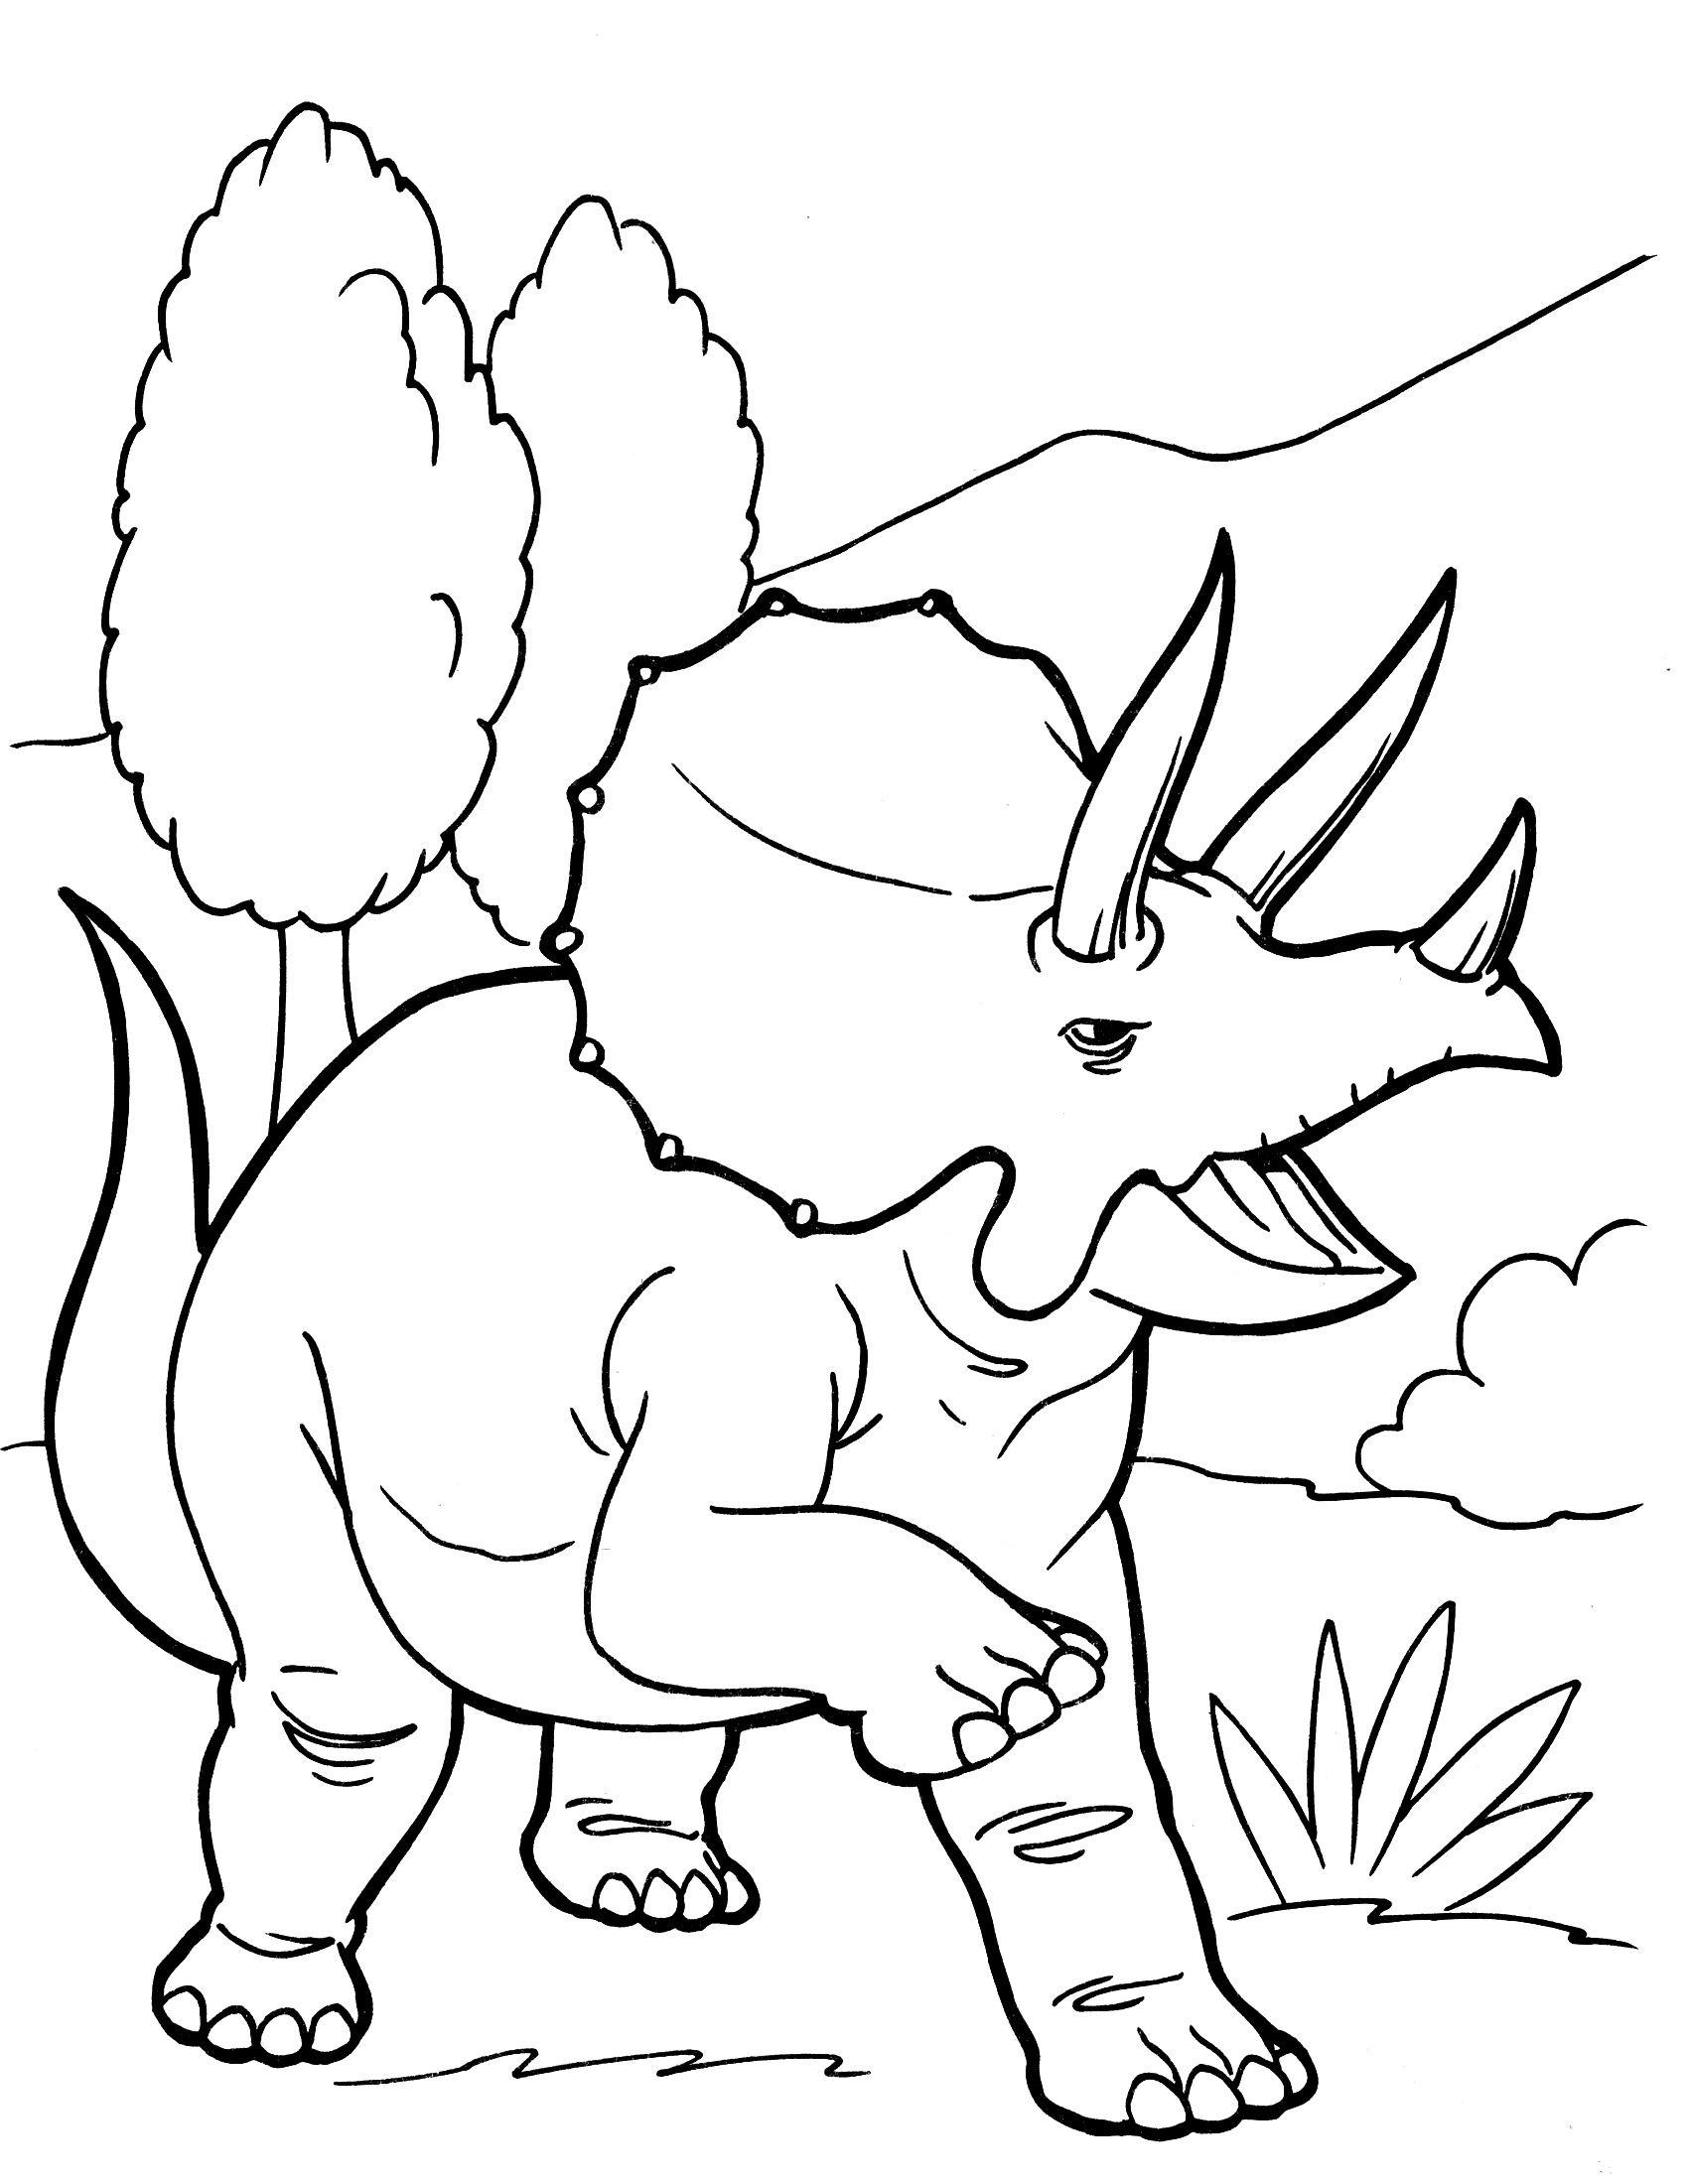 dinosaur paintings for kids | description from dinosaur ...